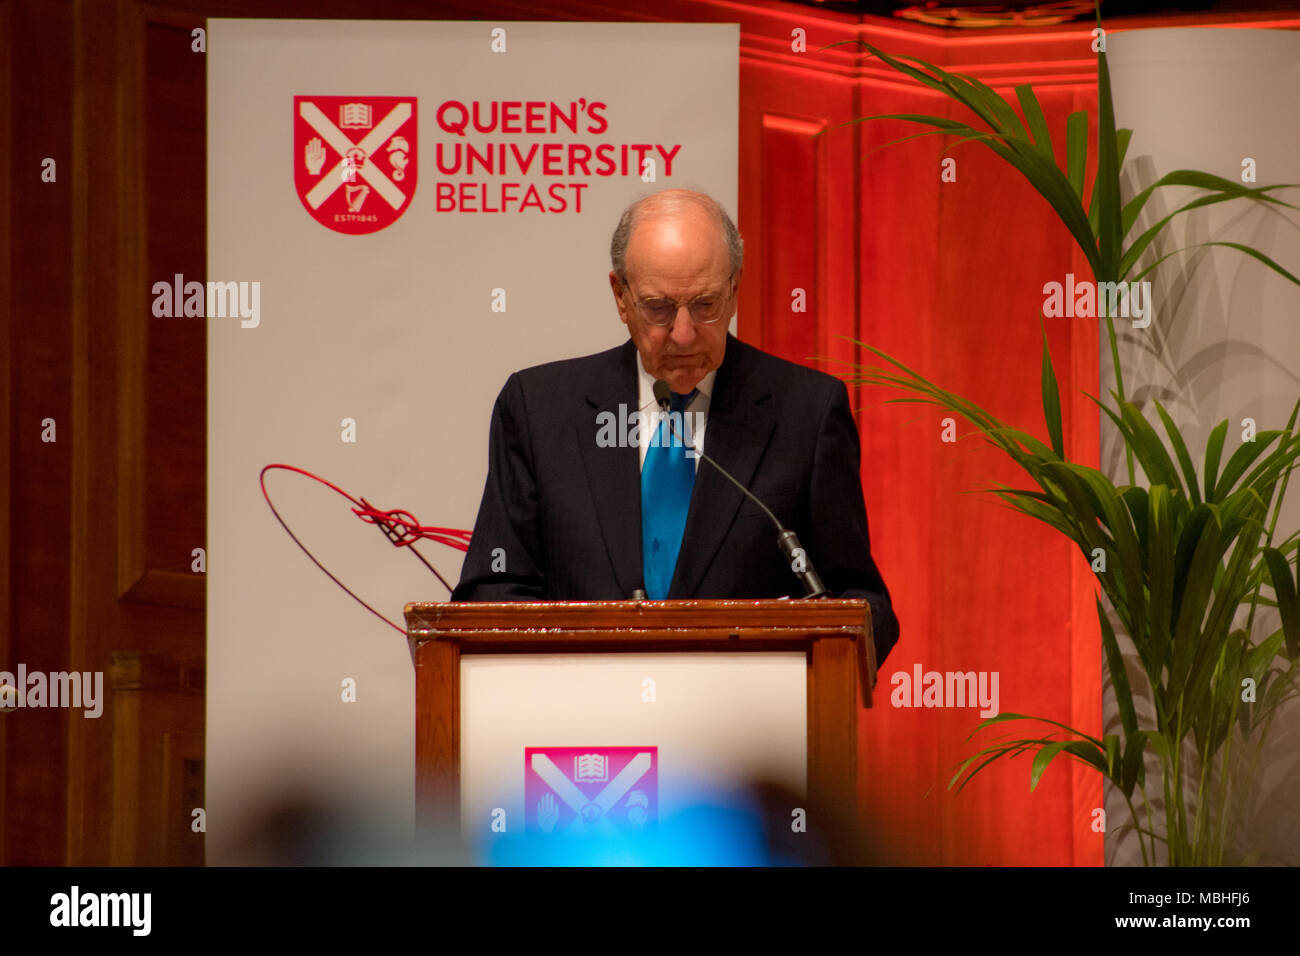 Belfast, Northern Ireland. 10th April, 2018. Building Peace Event celebrating the 20th Anniversary of the Good Friday Agreement in Belfast, Northern Ireland, United Kingdom at Queen's University with Bill Clinton, Tony Blair, Bertie Ahern and Senator George J Mitchell Credit: Daniel Bradley/Alamy Live News - Stock Image